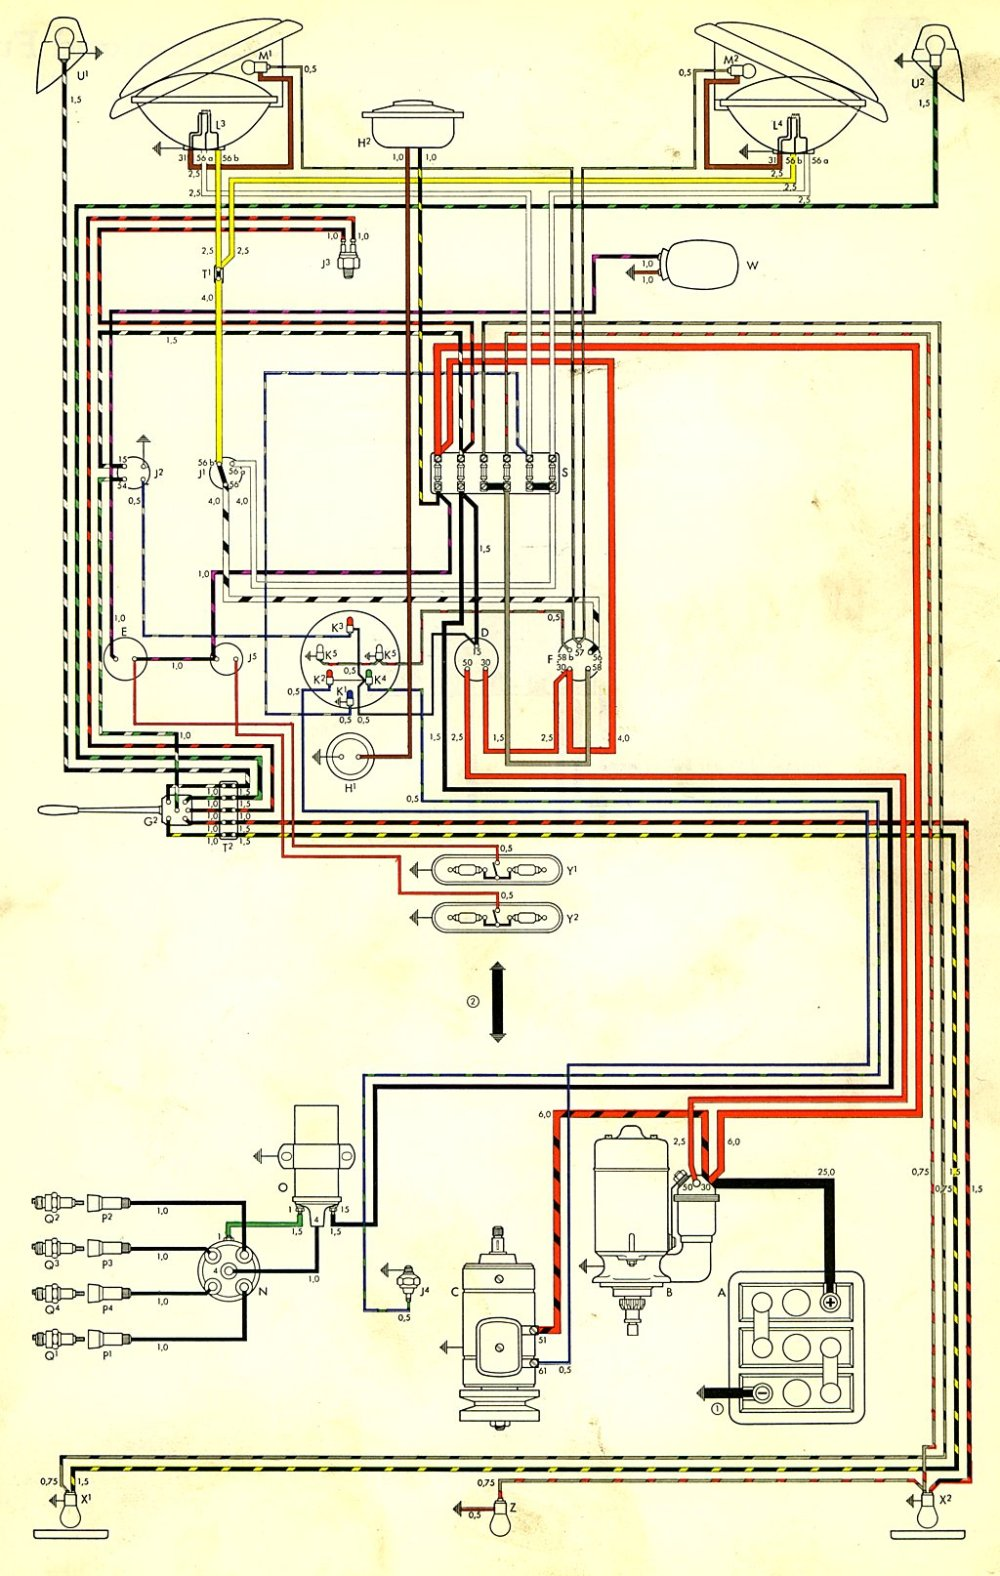 medium resolution of 58 vw alternator wiring everything wiring diagram 58 vw alternator wiring